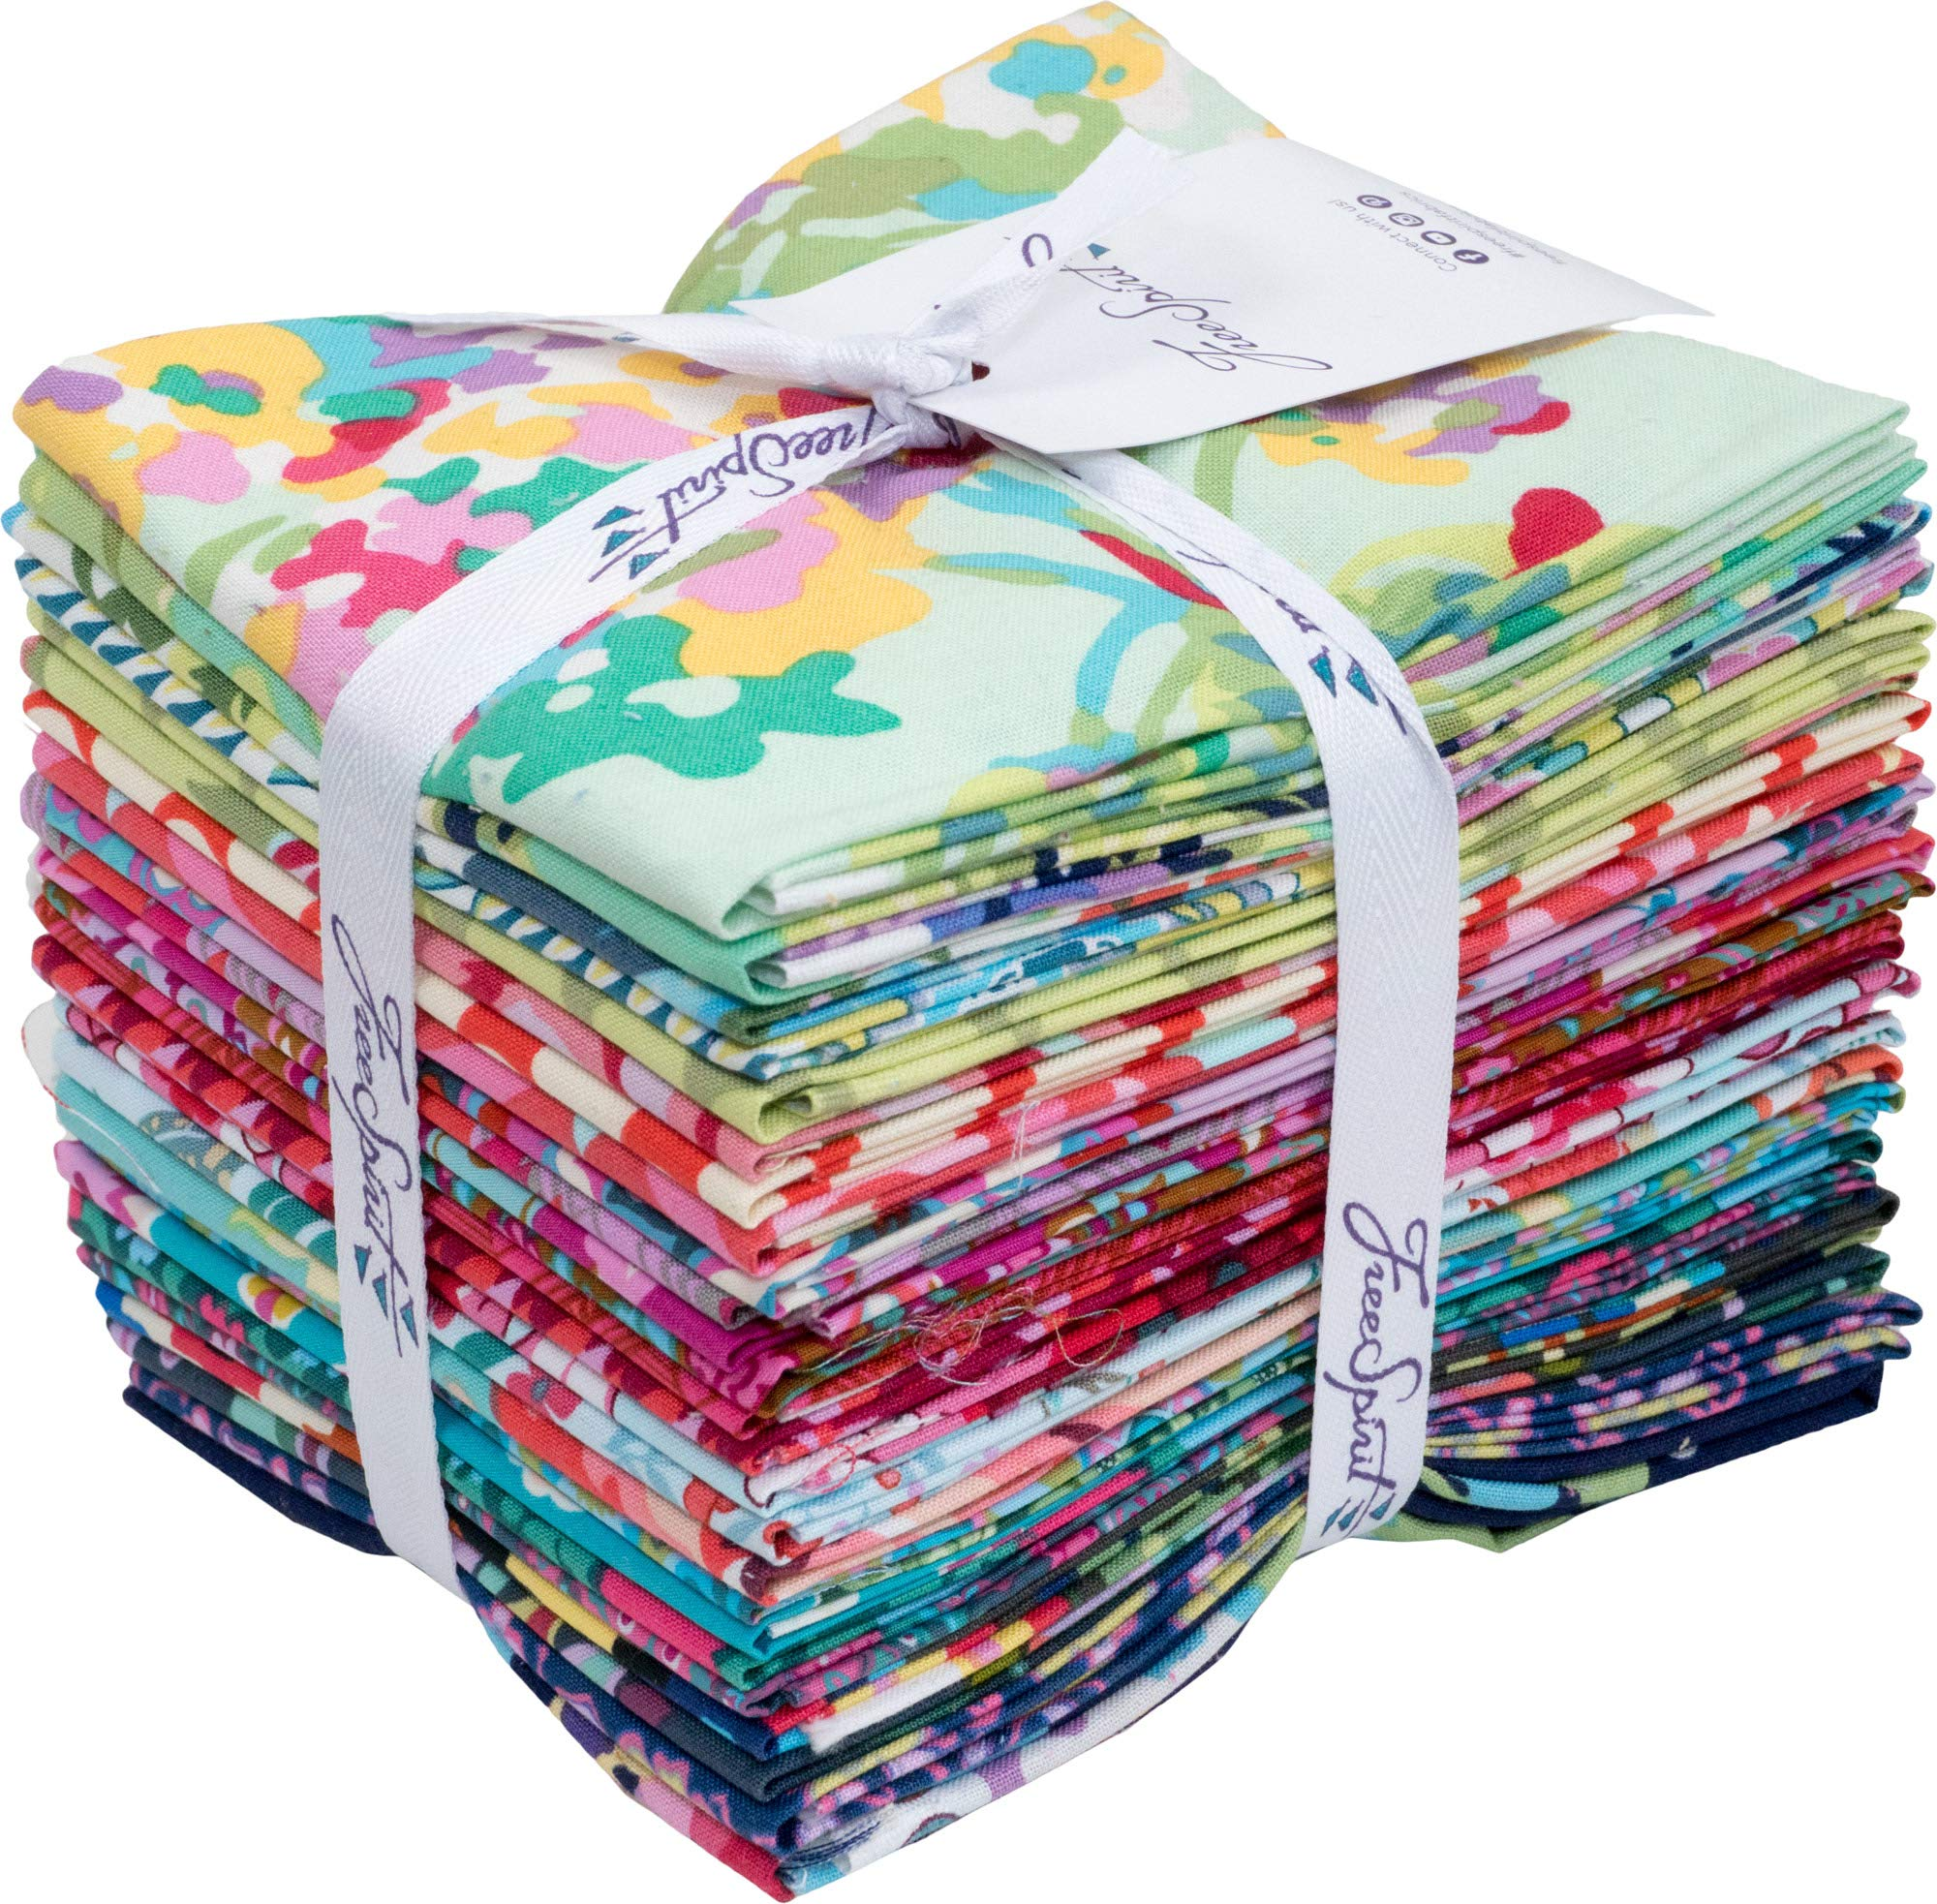 Amy Butler Farewell Amy 25 Fat Quarters Free Spirit by Free Spirit (Image #1)